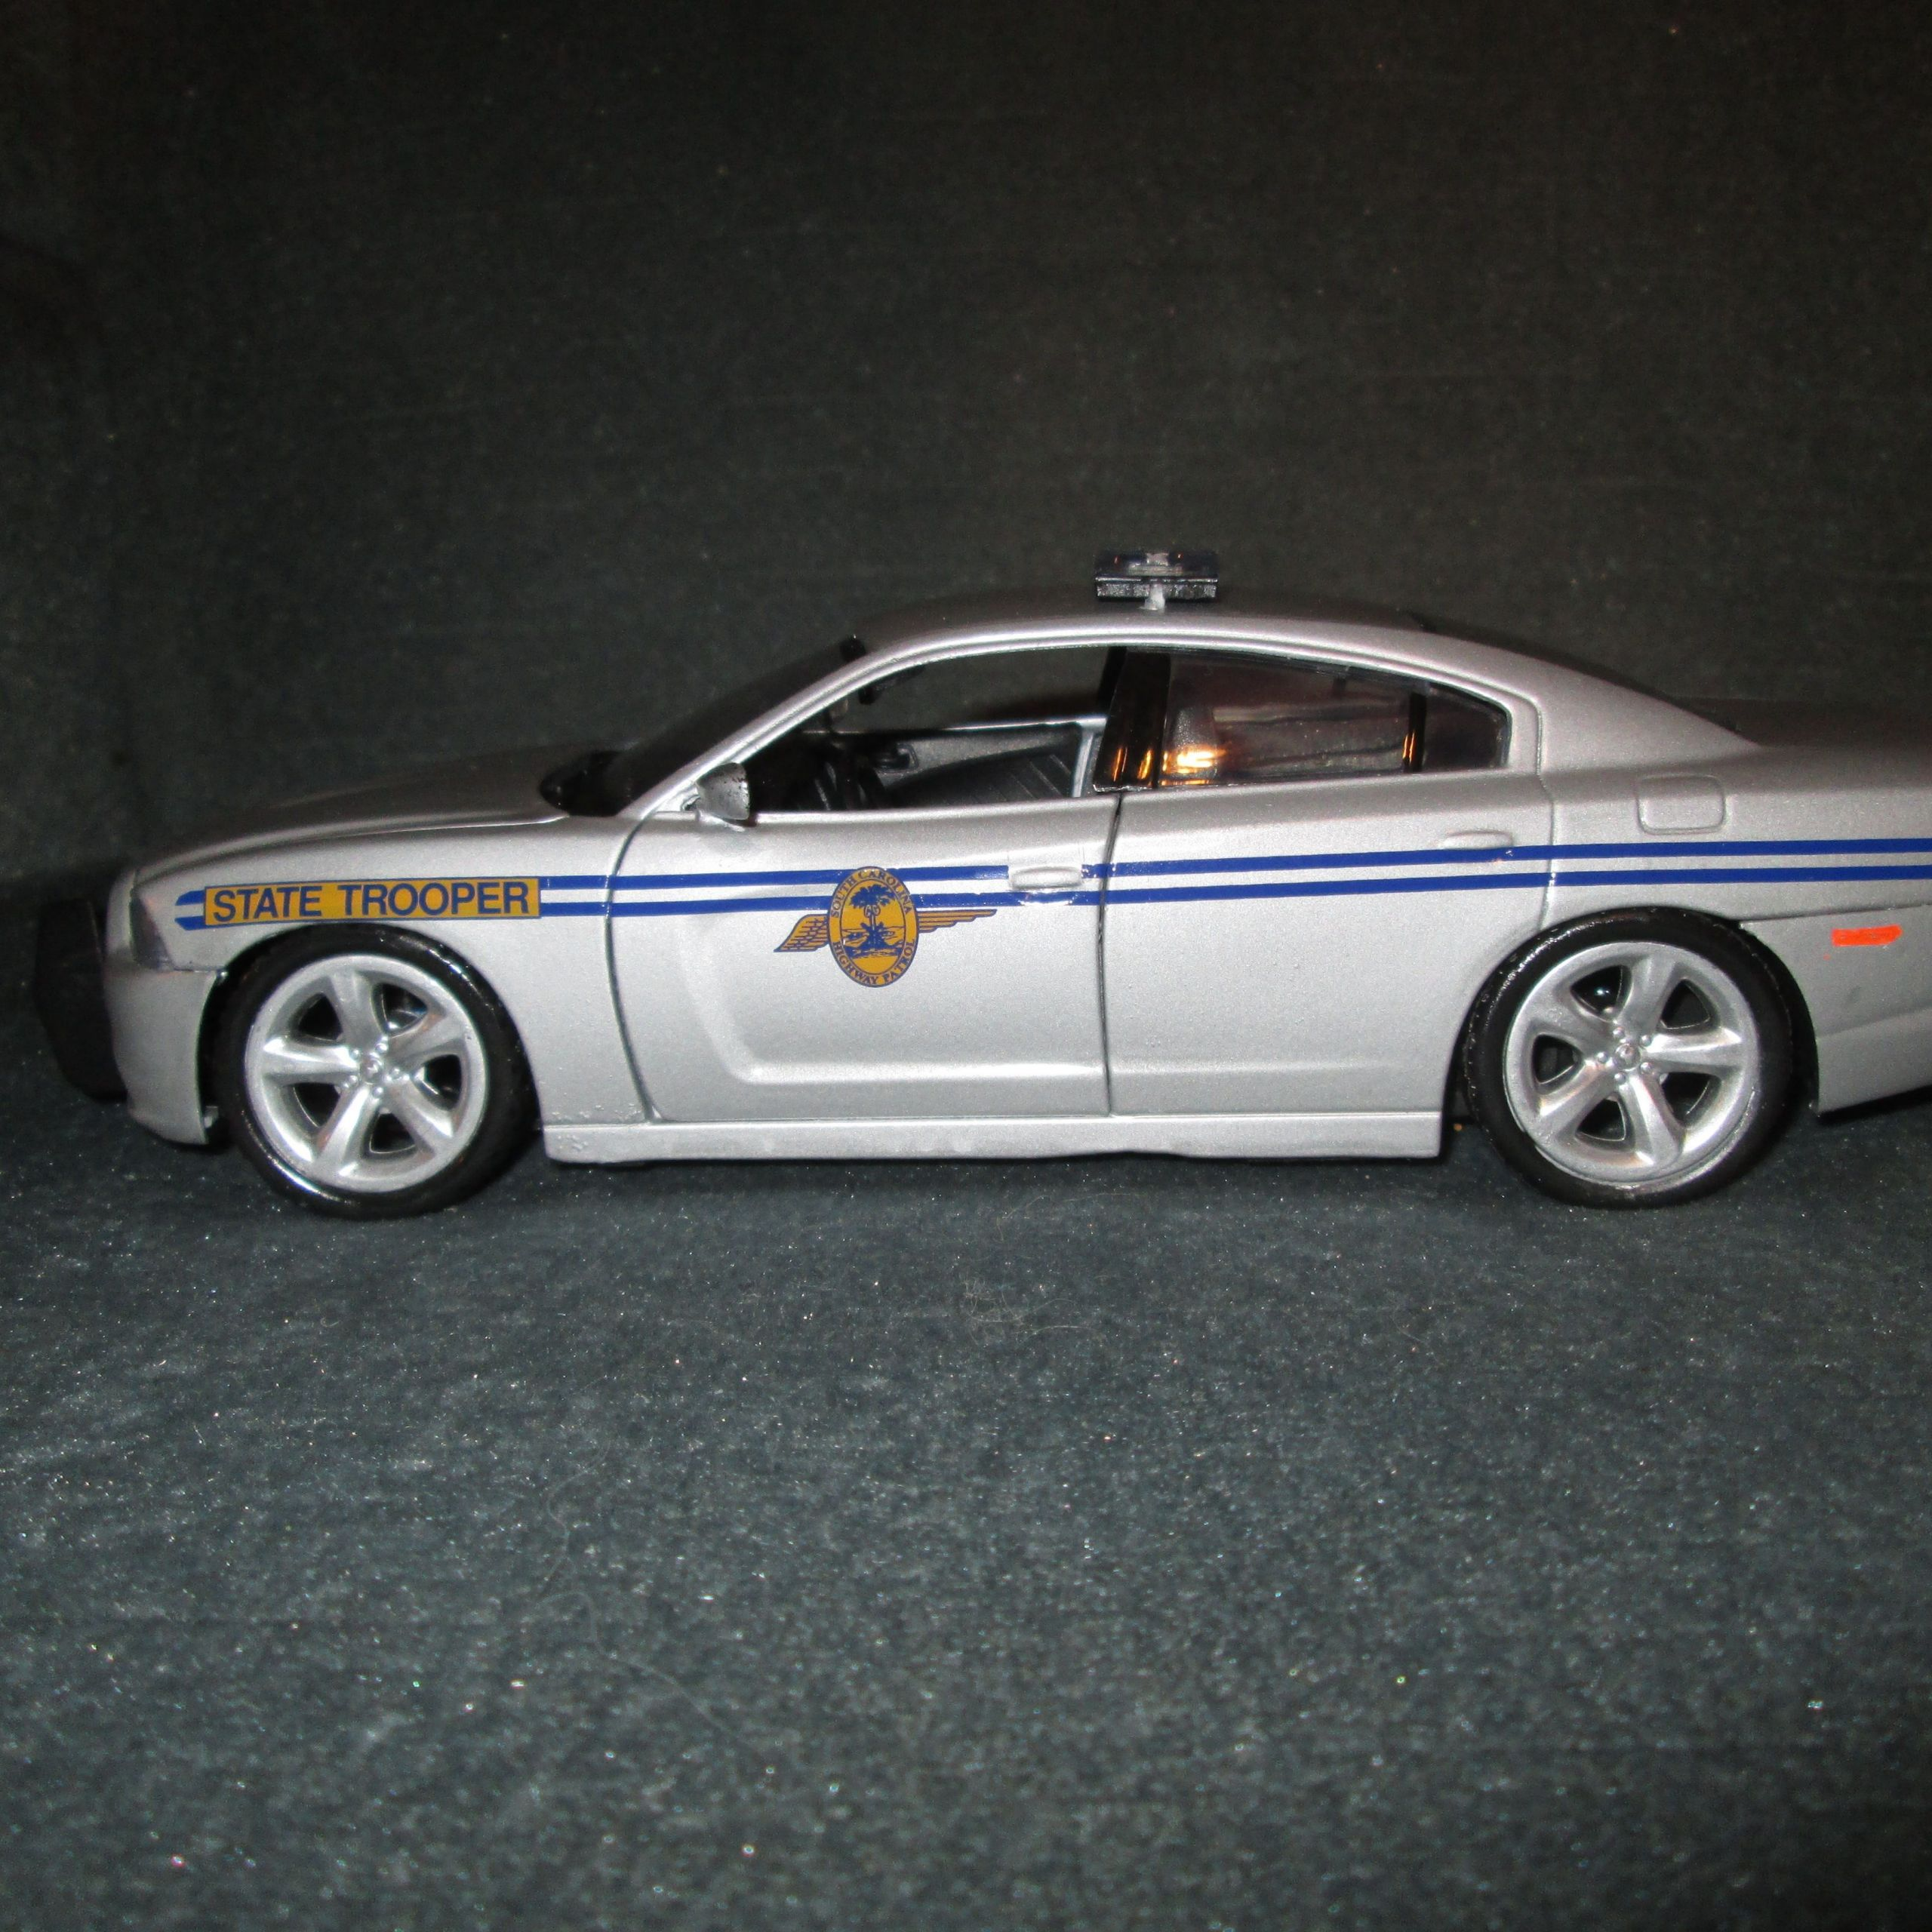 2014 Dodge Charger Best Of 1 24 Scale south Carolina Highway Patrol 2014 Dodge Charger